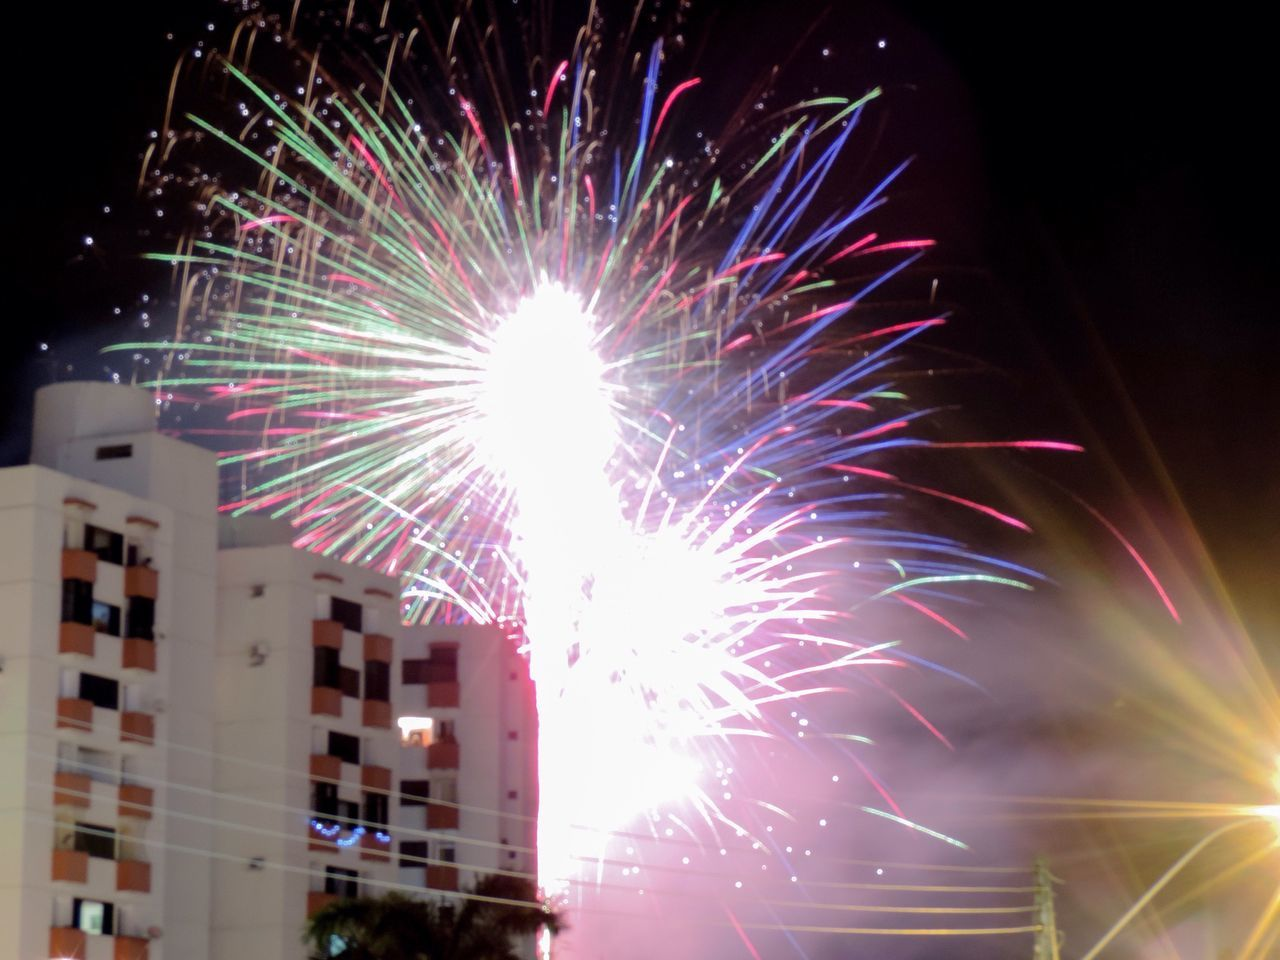 celebration, night, firework display, firework - man made object, event, illuminated, exploding, arts culture and entertainment, glowing, low angle view, long exposure, firework, architecture, building exterior, motion, blurred motion, outdoors, built structure, celebration event, multi colored, no people, sky, city